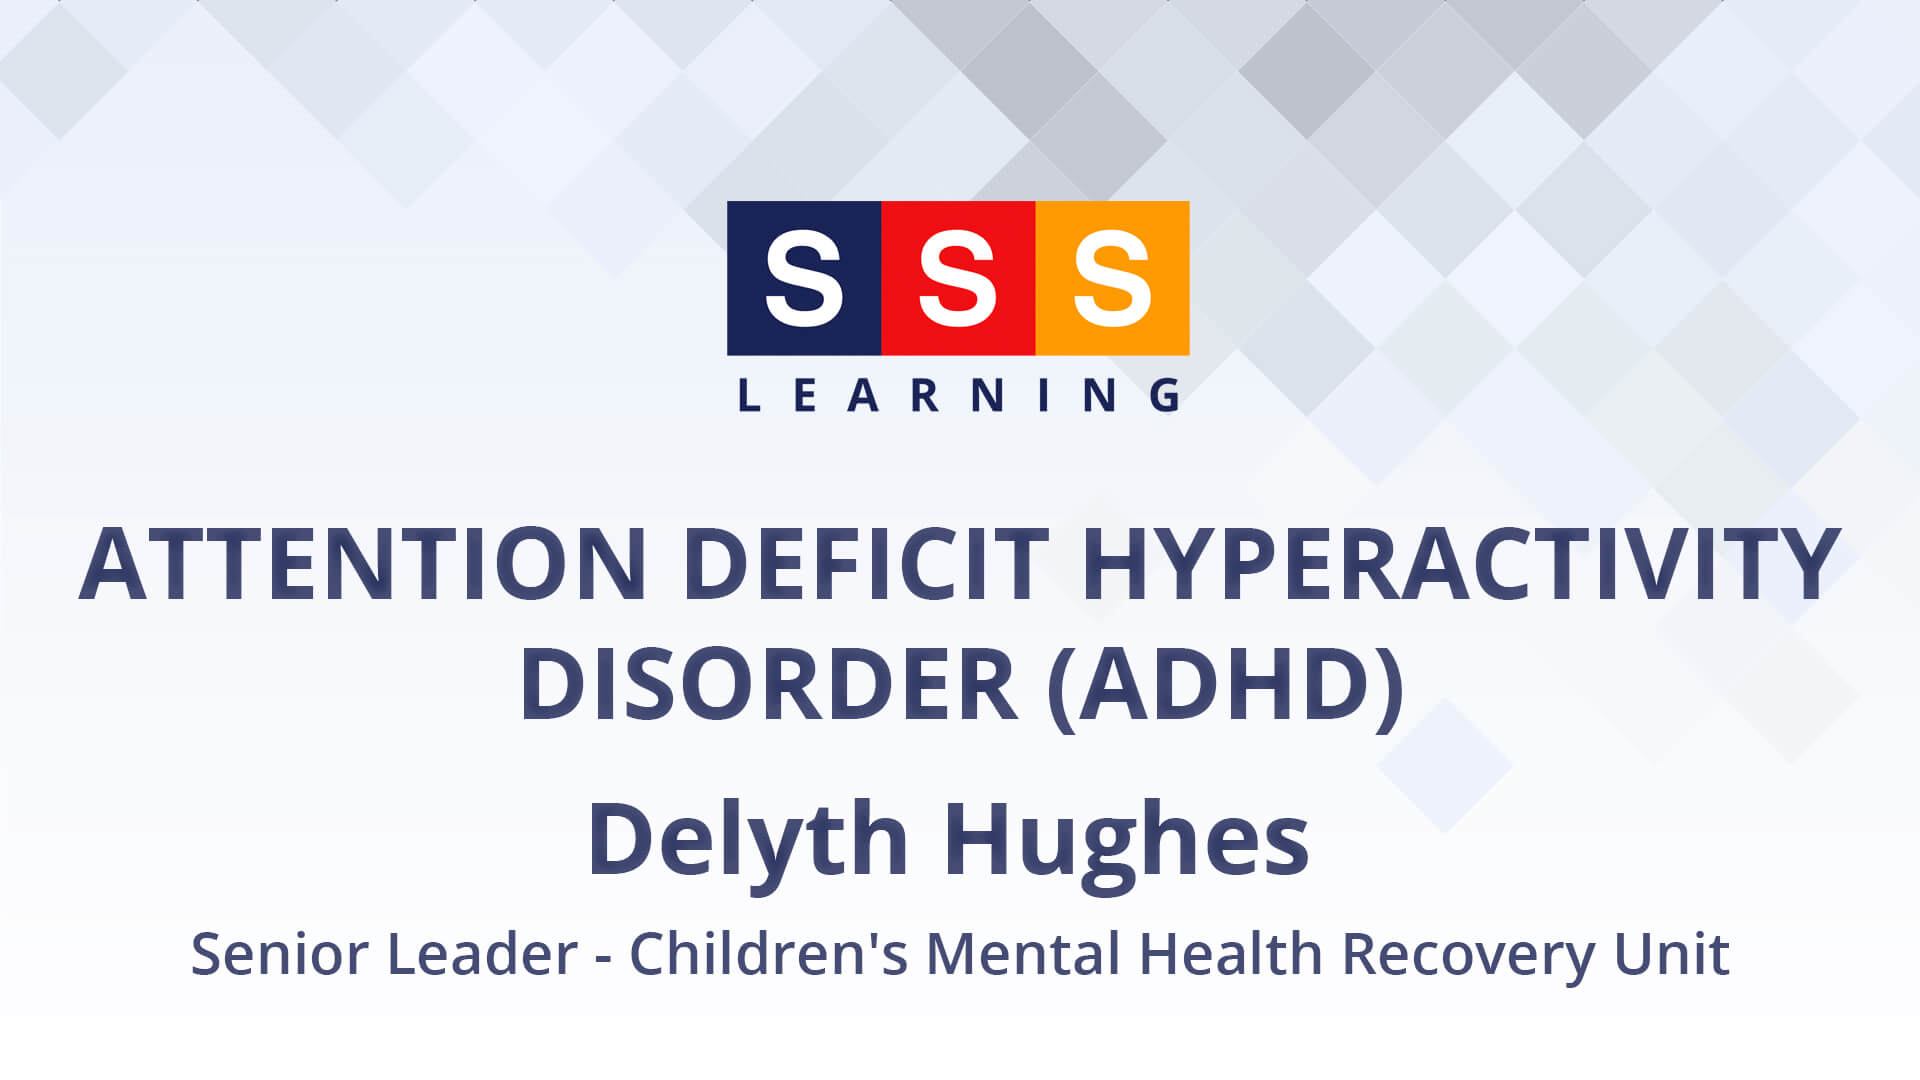 Delyth Hughes talks about children's mental health & wellbeing in relation to ADHD.